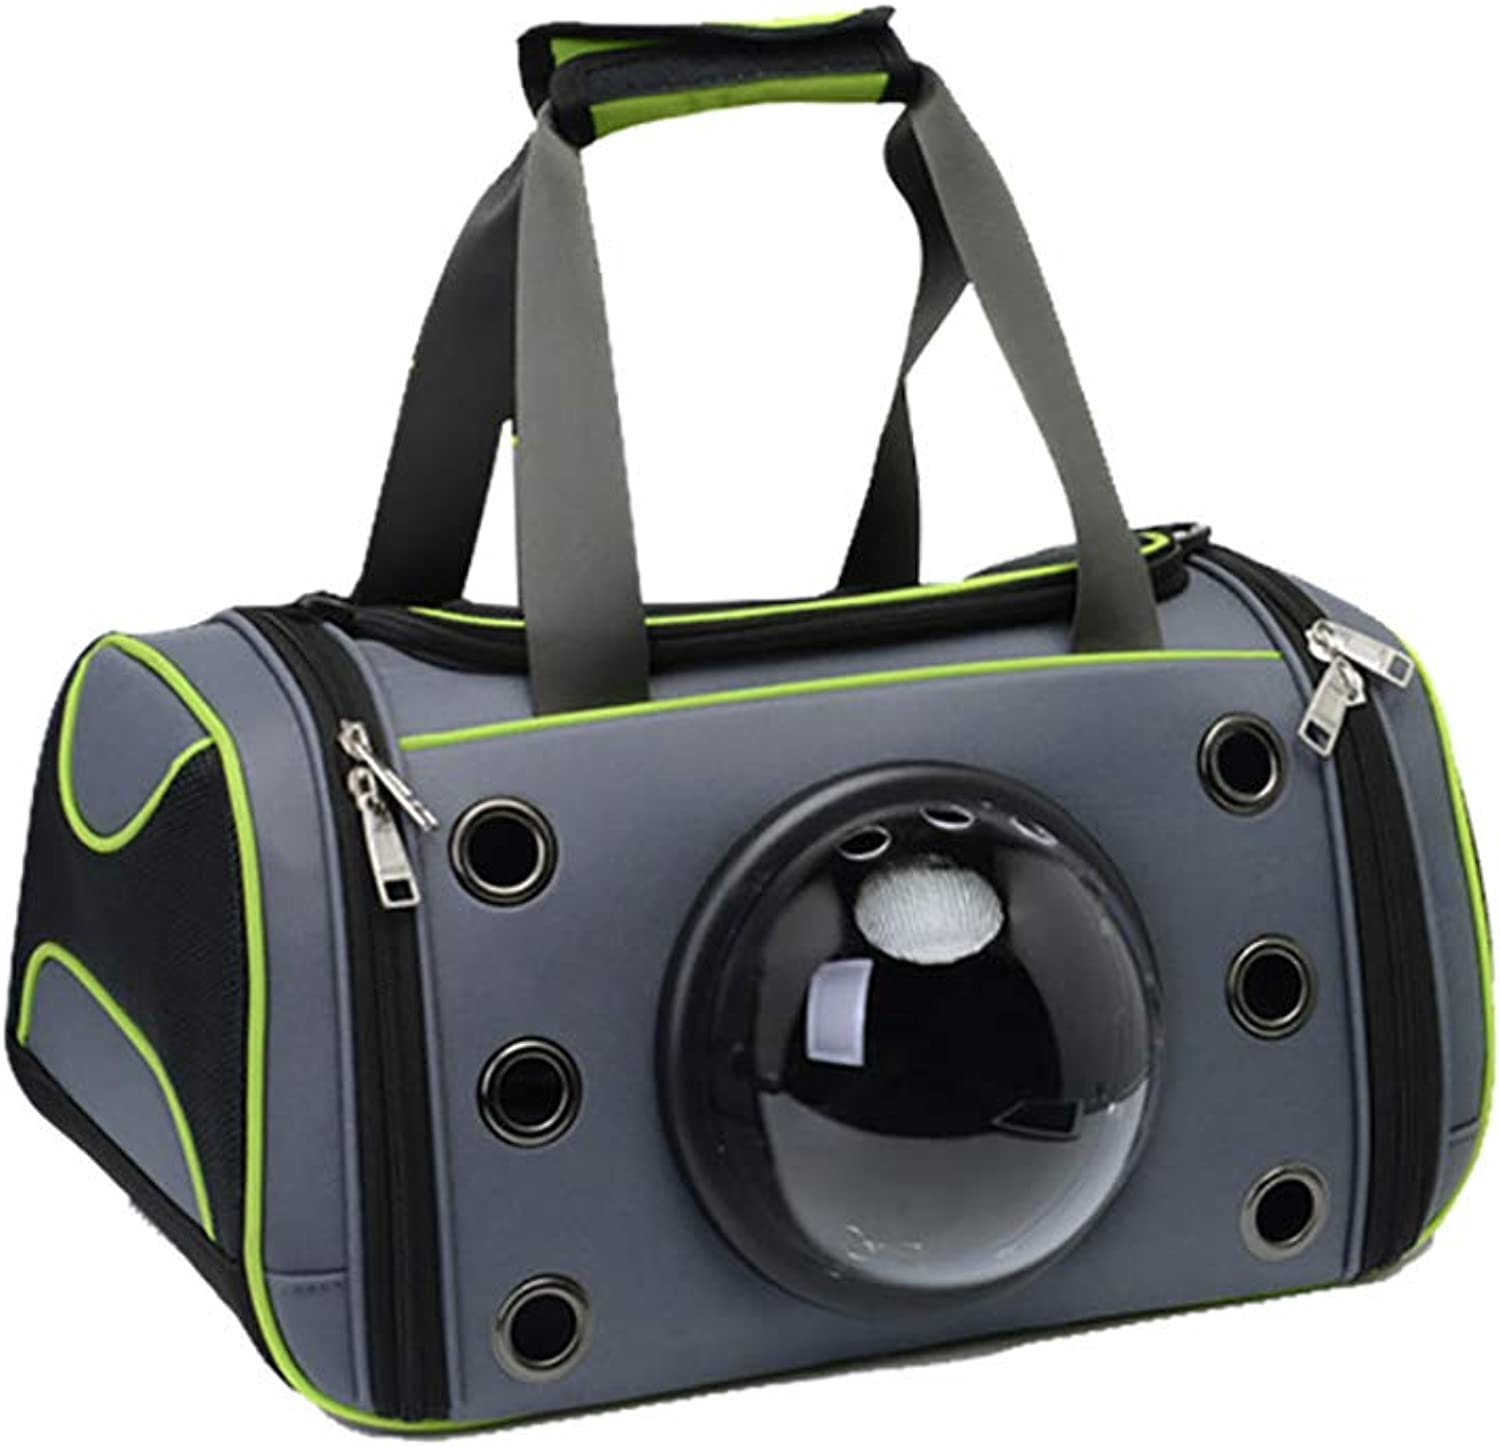 Lightweight Pet Carrier Bag with Mat, Portable Transparent  Breathable,Space Capsule Travel Transport Crate,44 x 26 x 26 cm